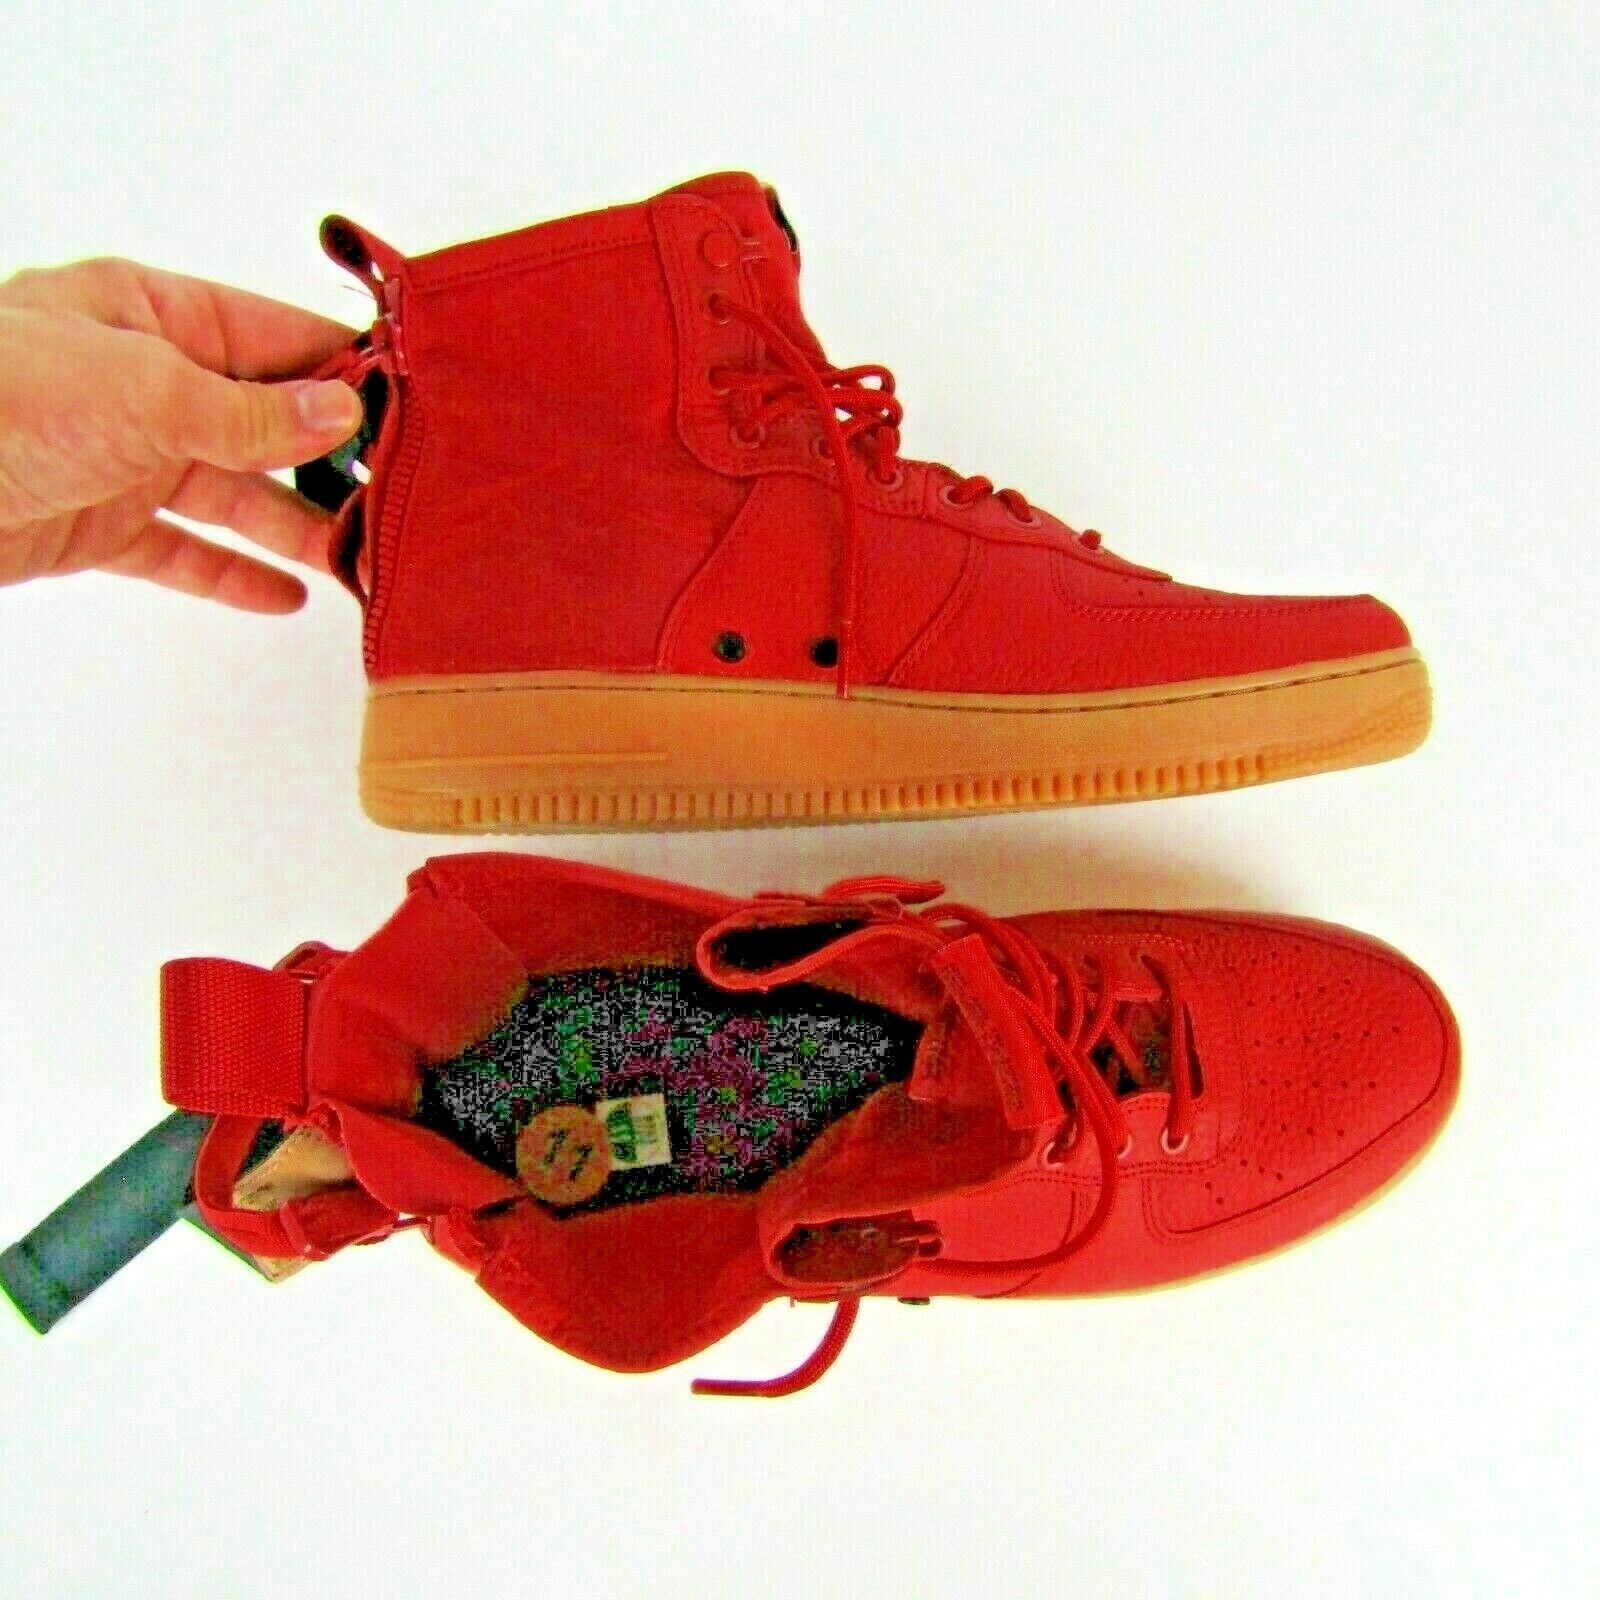 Nike SF AF1 Mid Dune Red Black Shoes Size 11 Men 917753 600 Air Force 1 Sneakers image 6